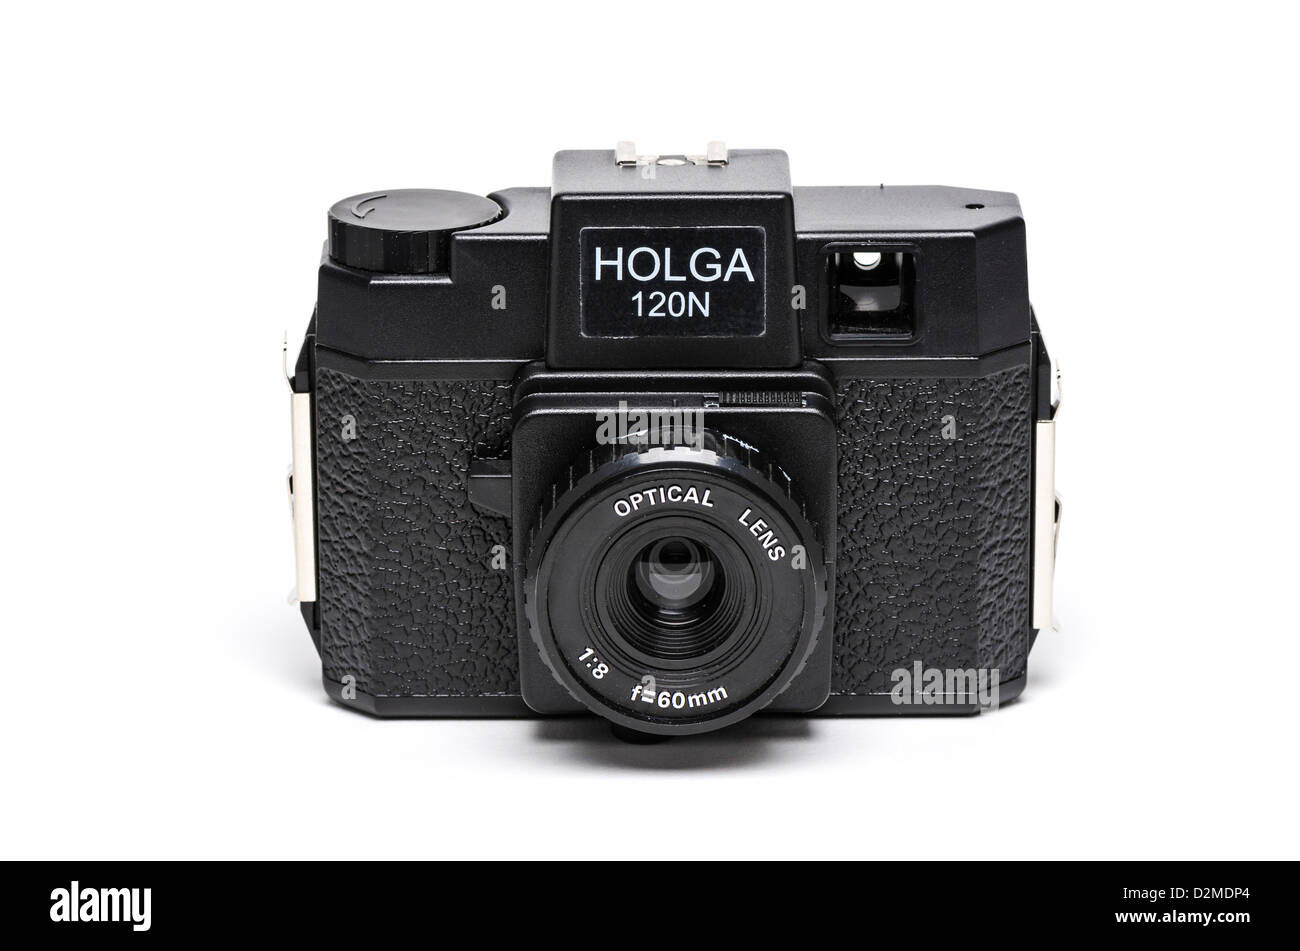 Holga 120N camera - Stock Image